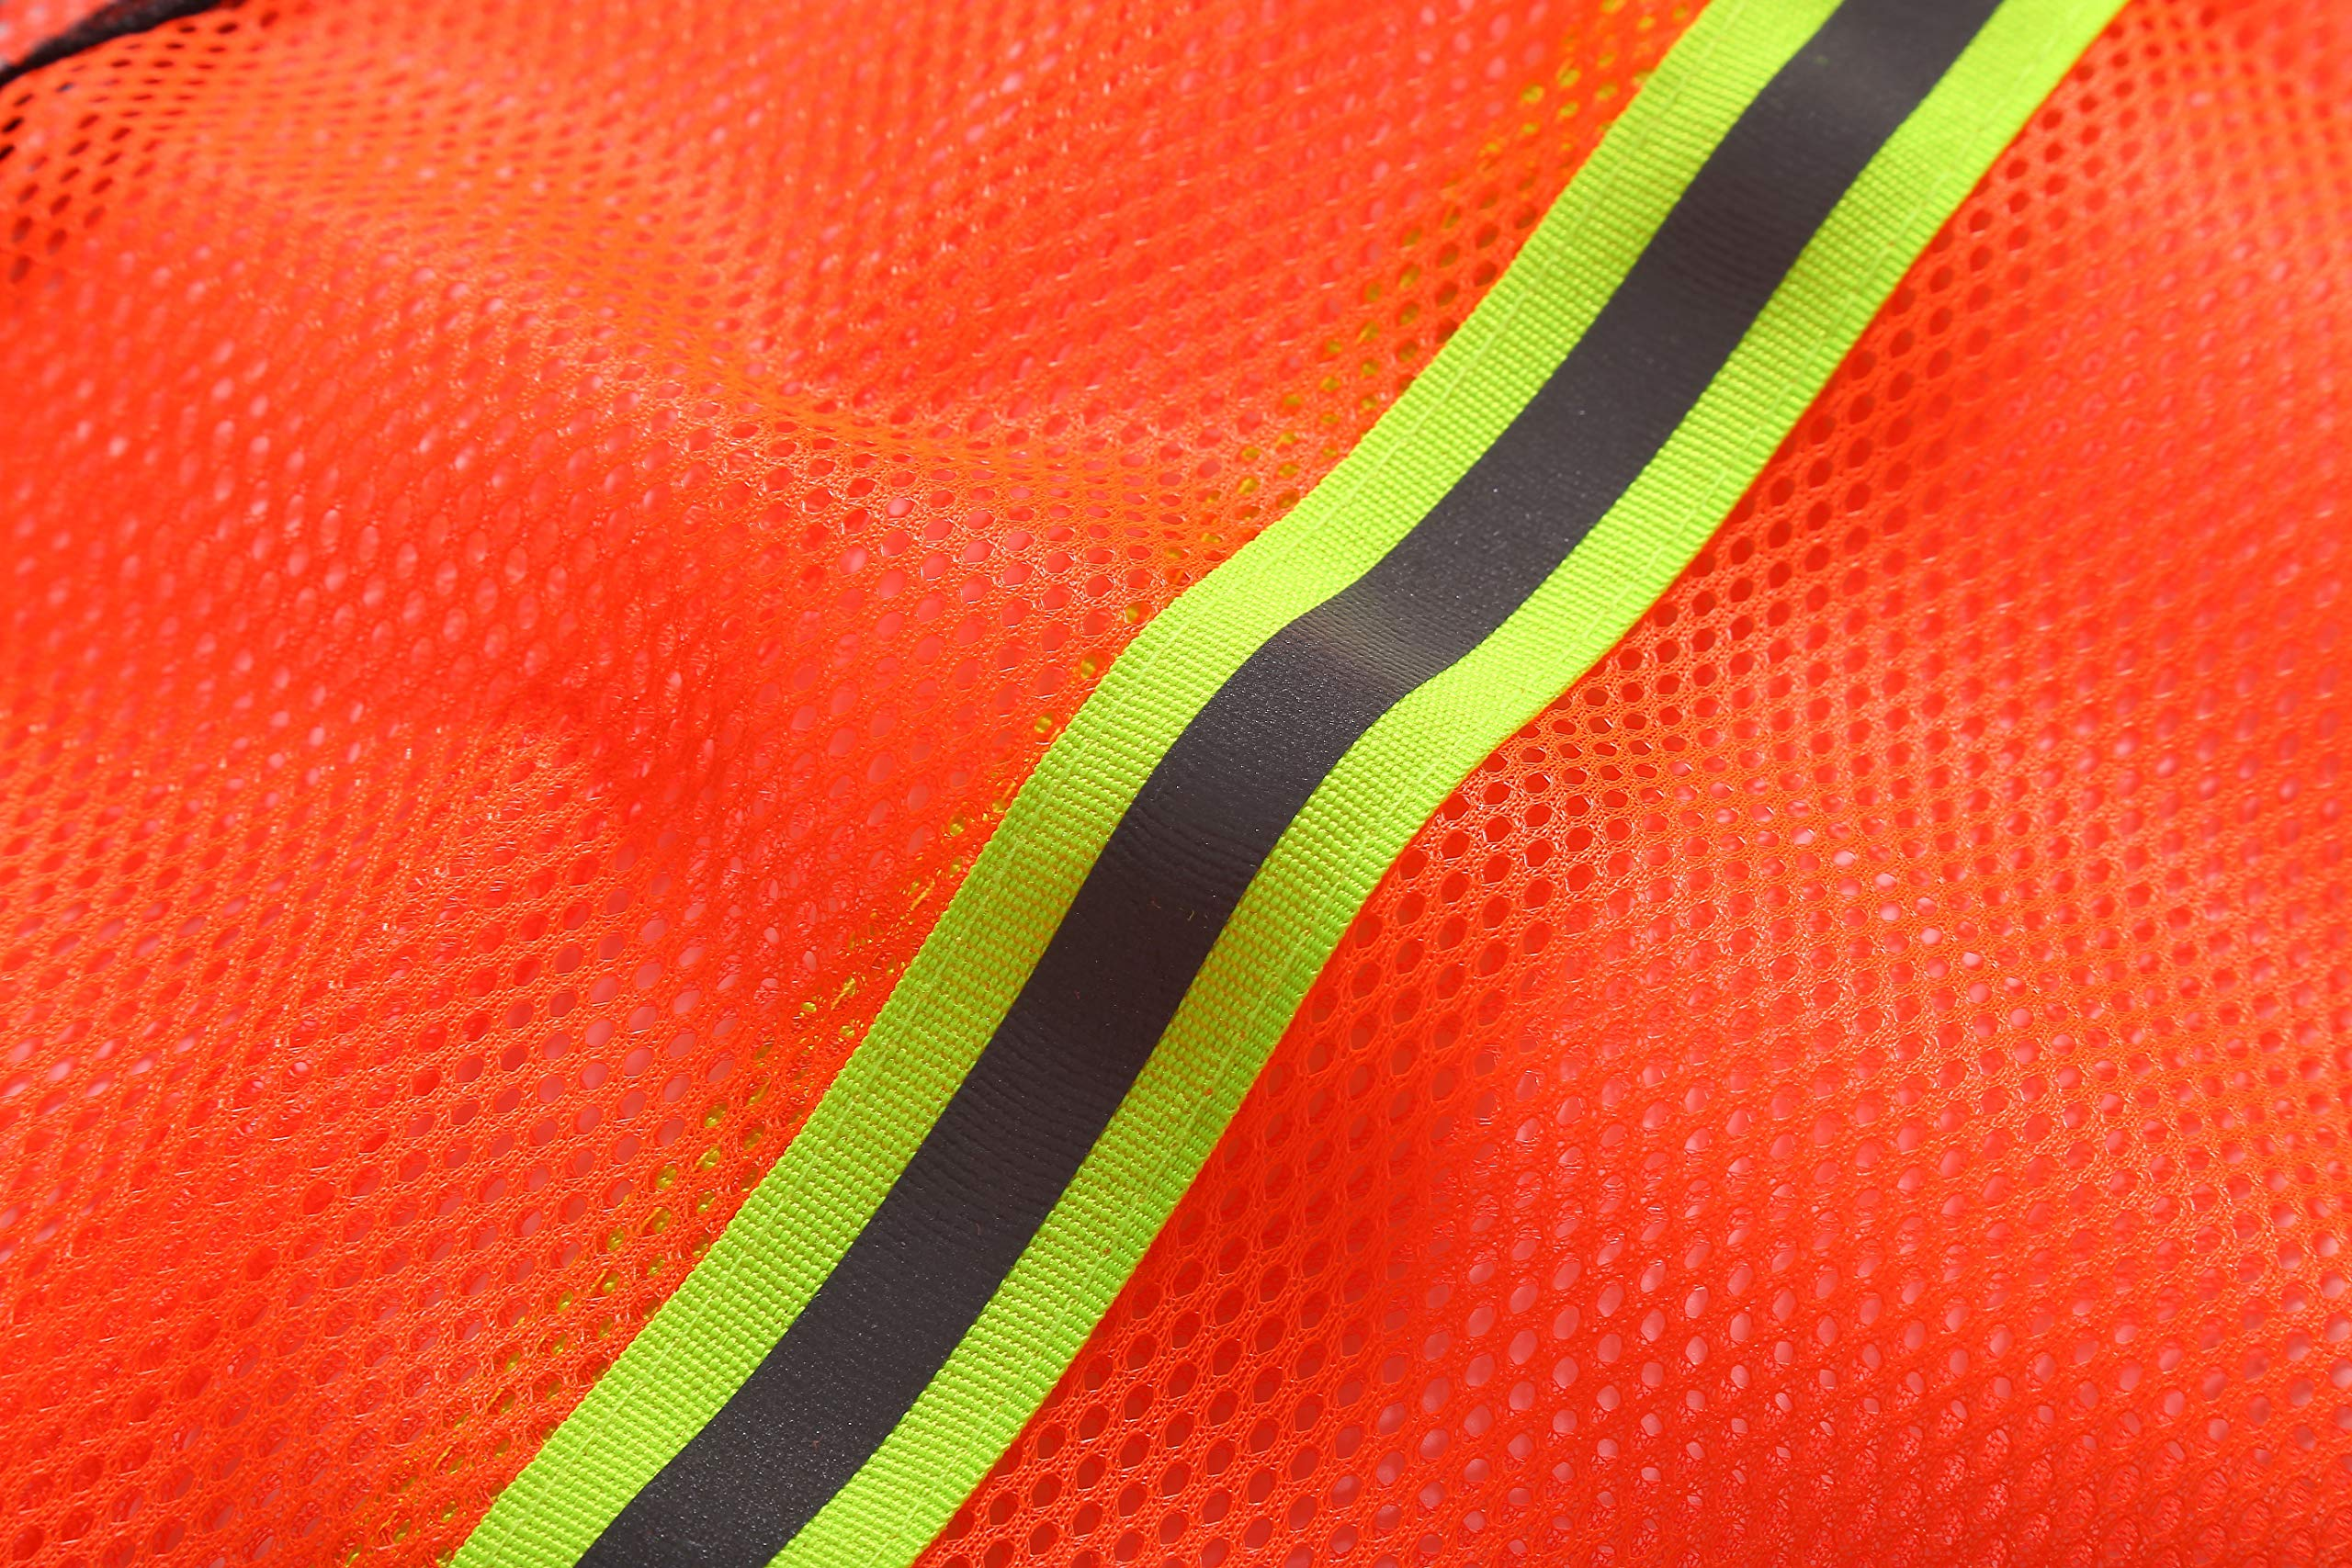 SIFE High Visibility Reflective Safety Vest with 1 Inch Reflective Strips,Made from Breathable and Neon Orange Mesh Fabric,Universal Size,10 pack by SIFE (Image #4)